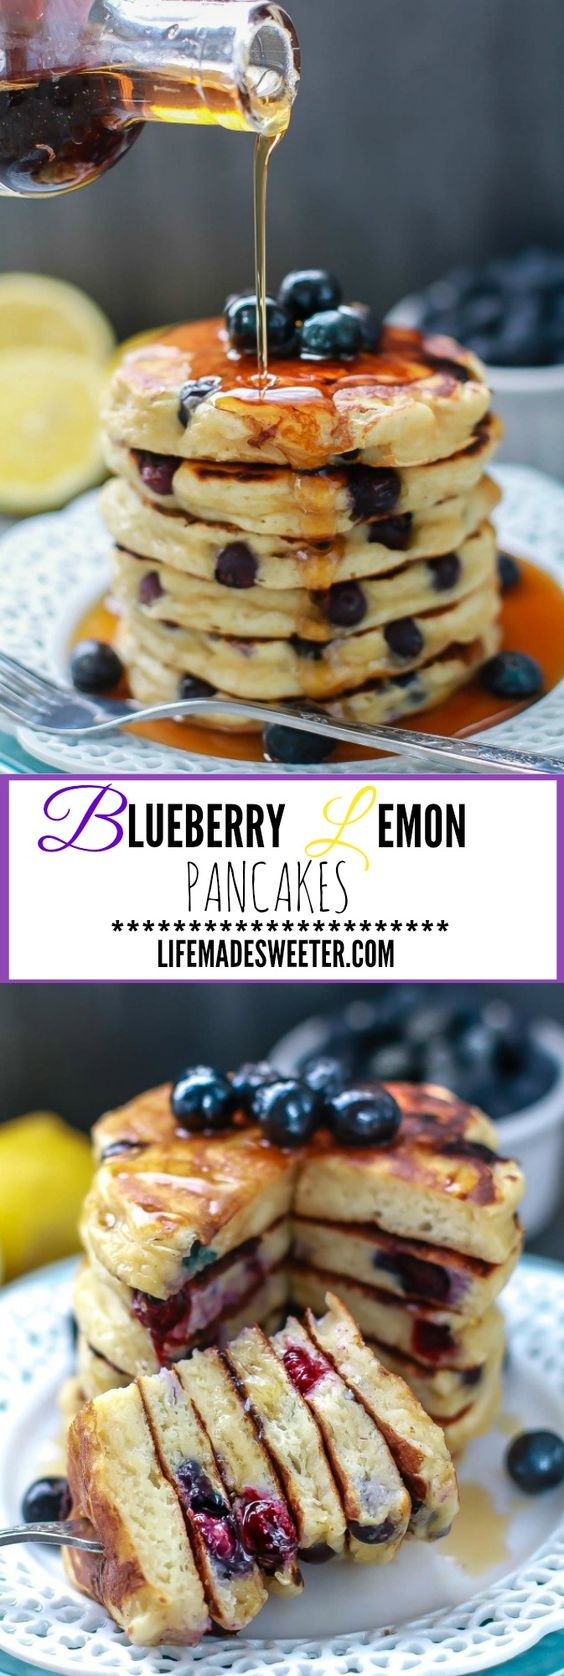 Lemon pancakes, Pancakes and Blueberries on Pinterest